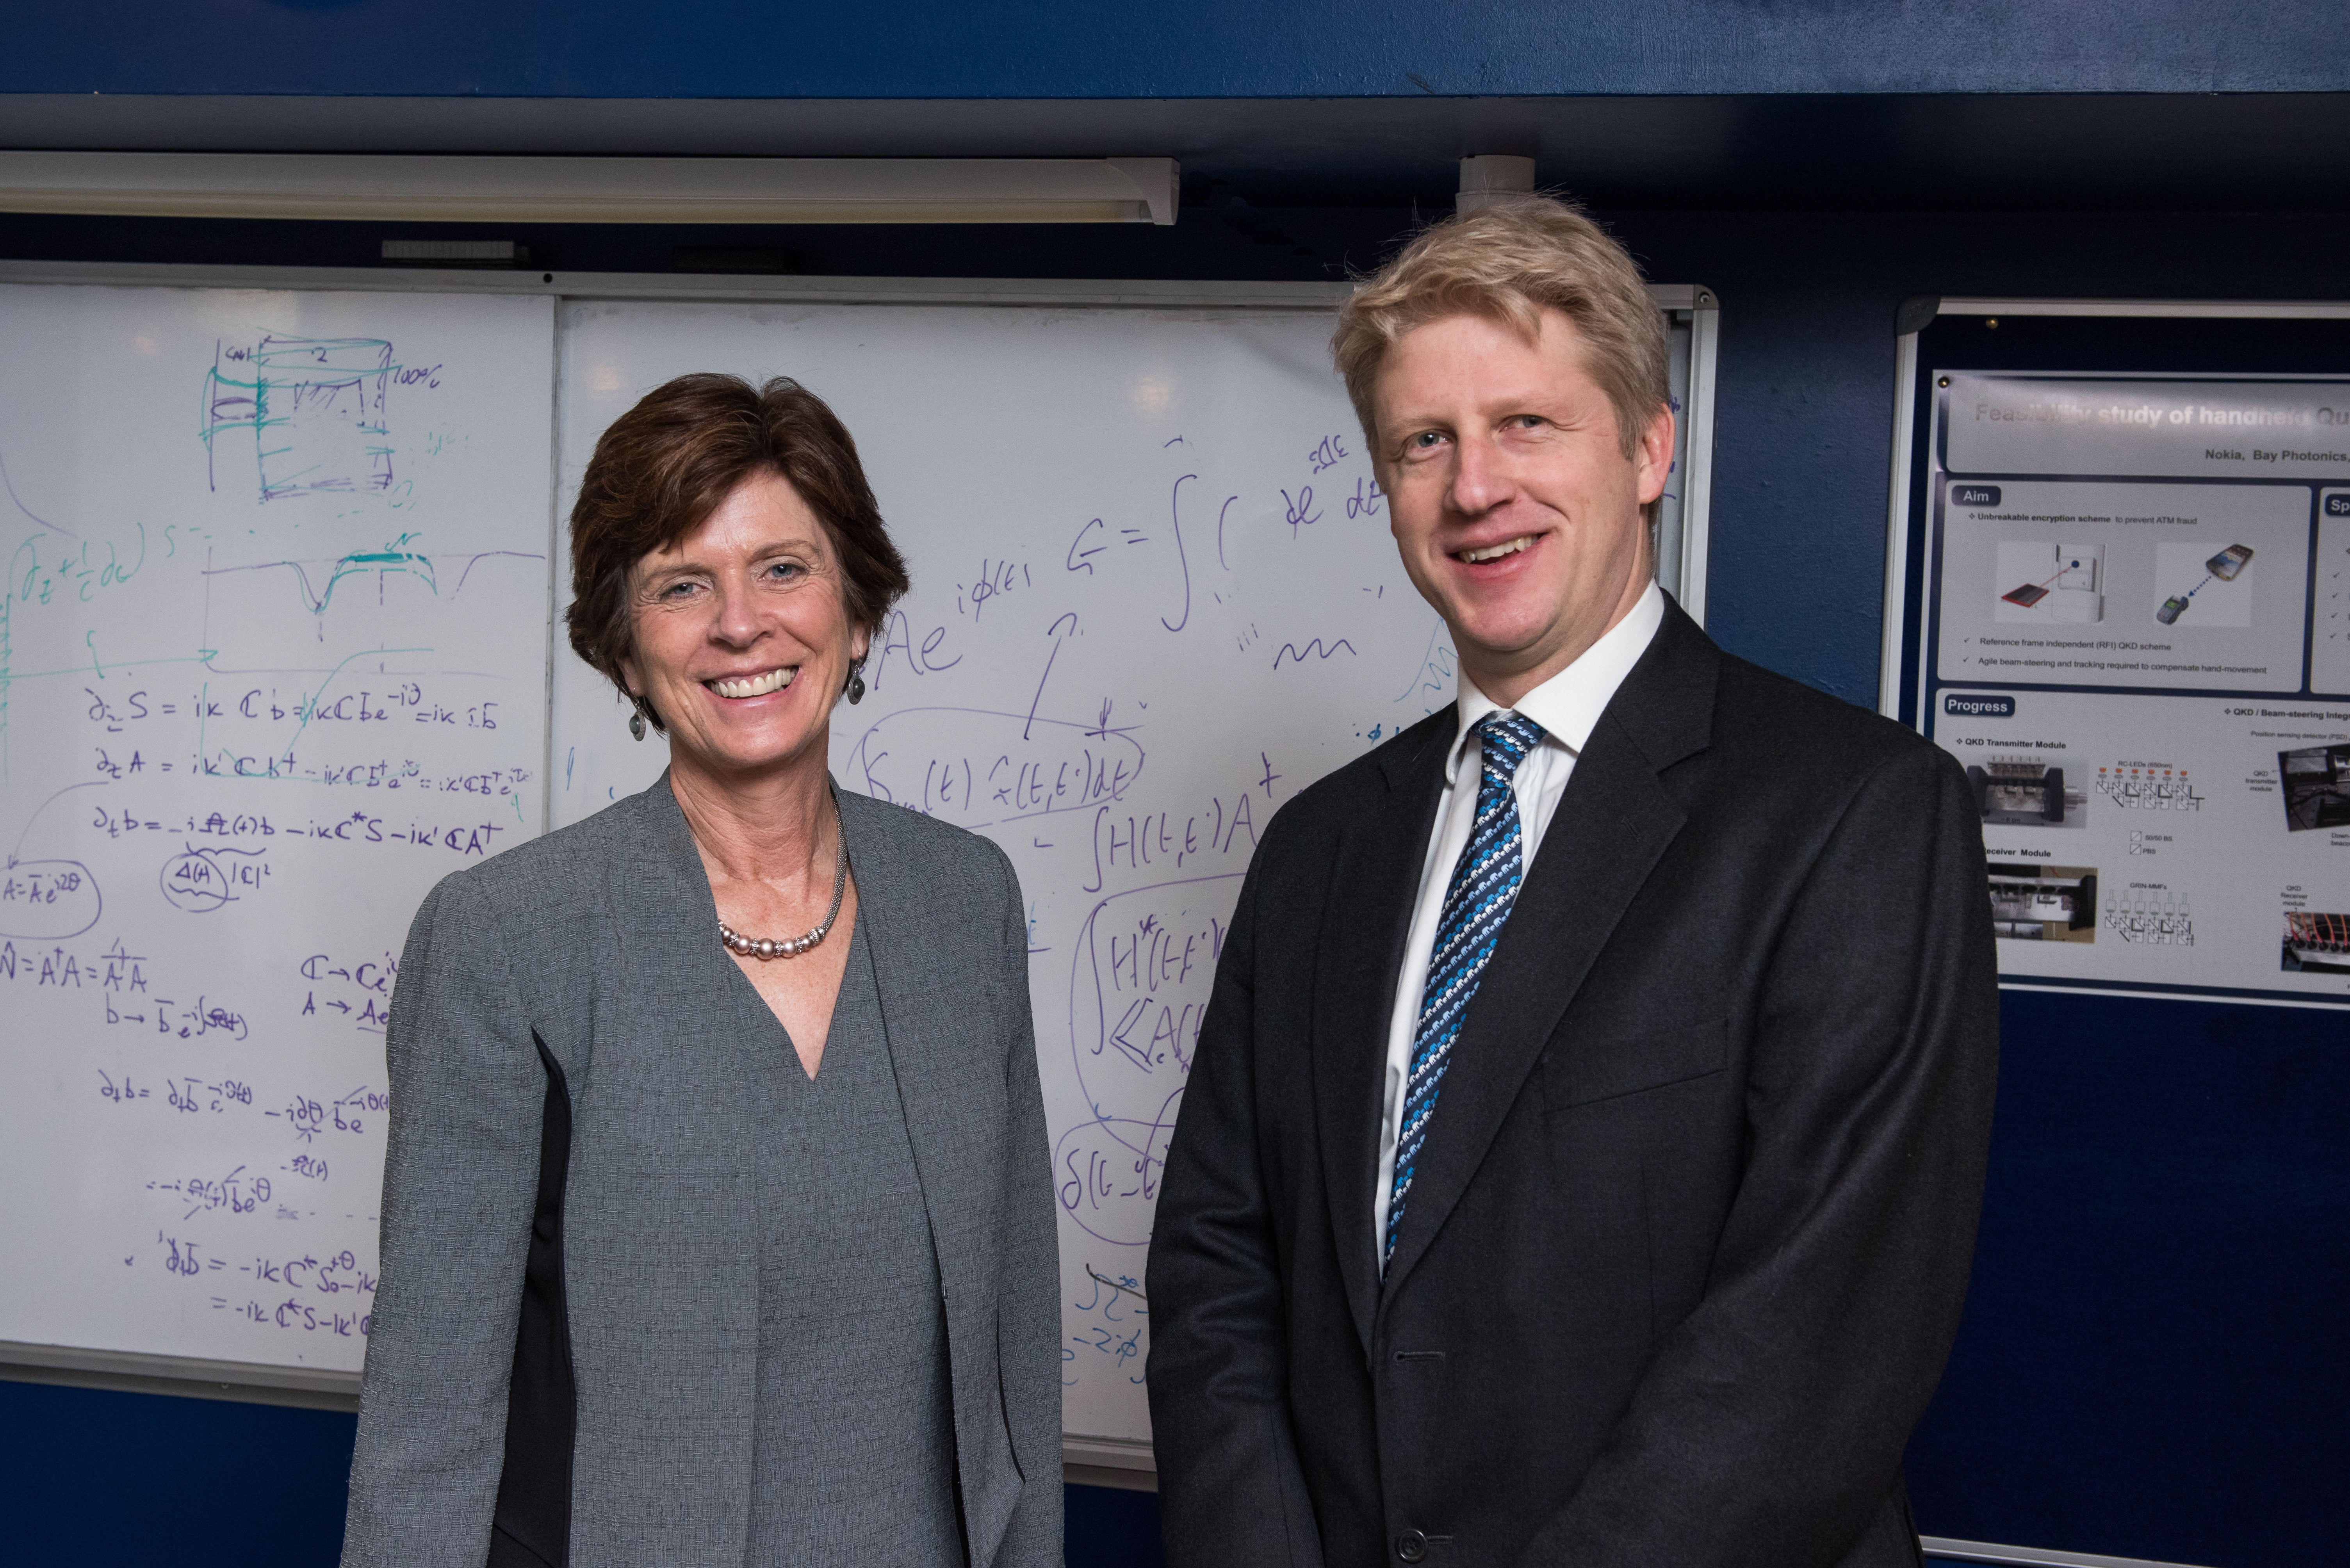 Oxford awarded £13.5m for DPhil places and further funding for quantum research